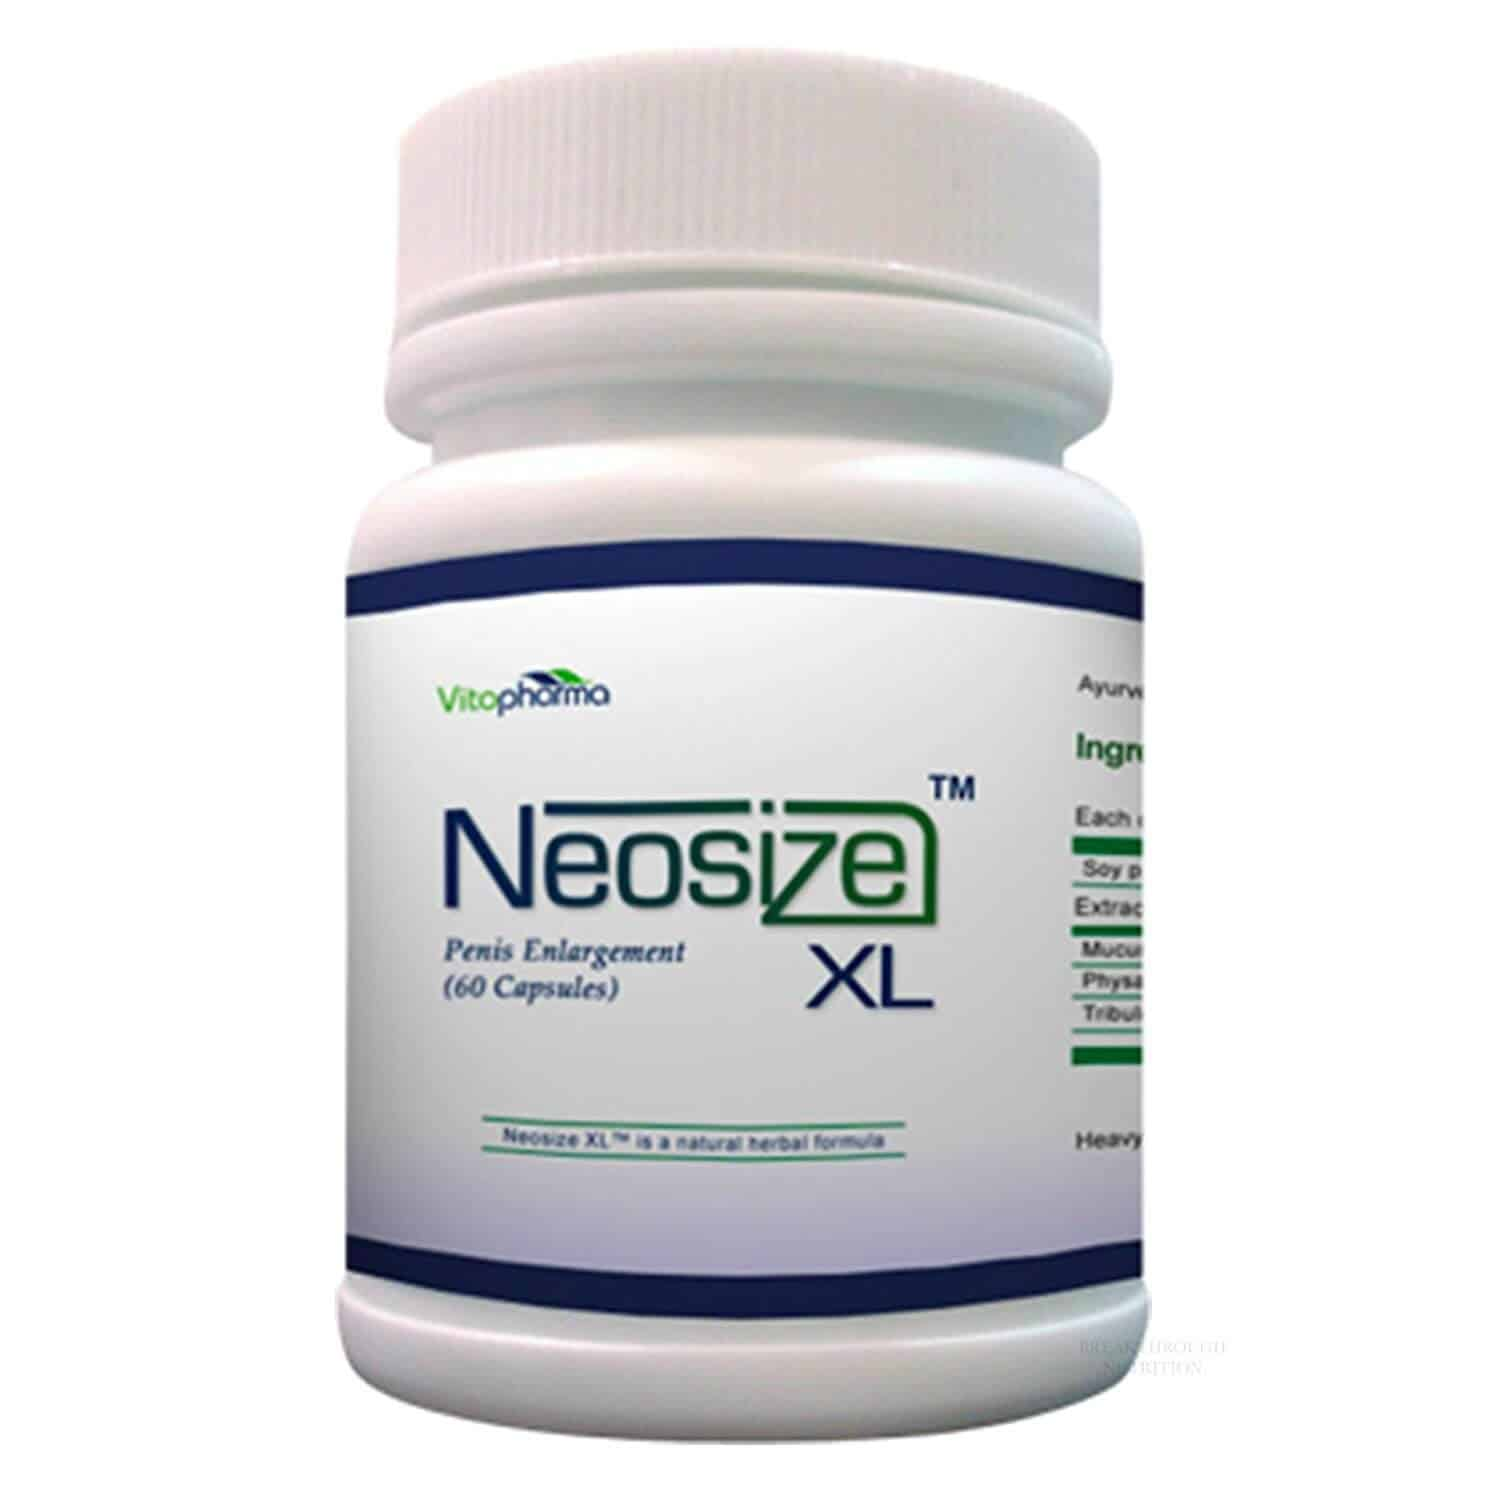 NeoSize XL Review - 15 Things You Need to Know